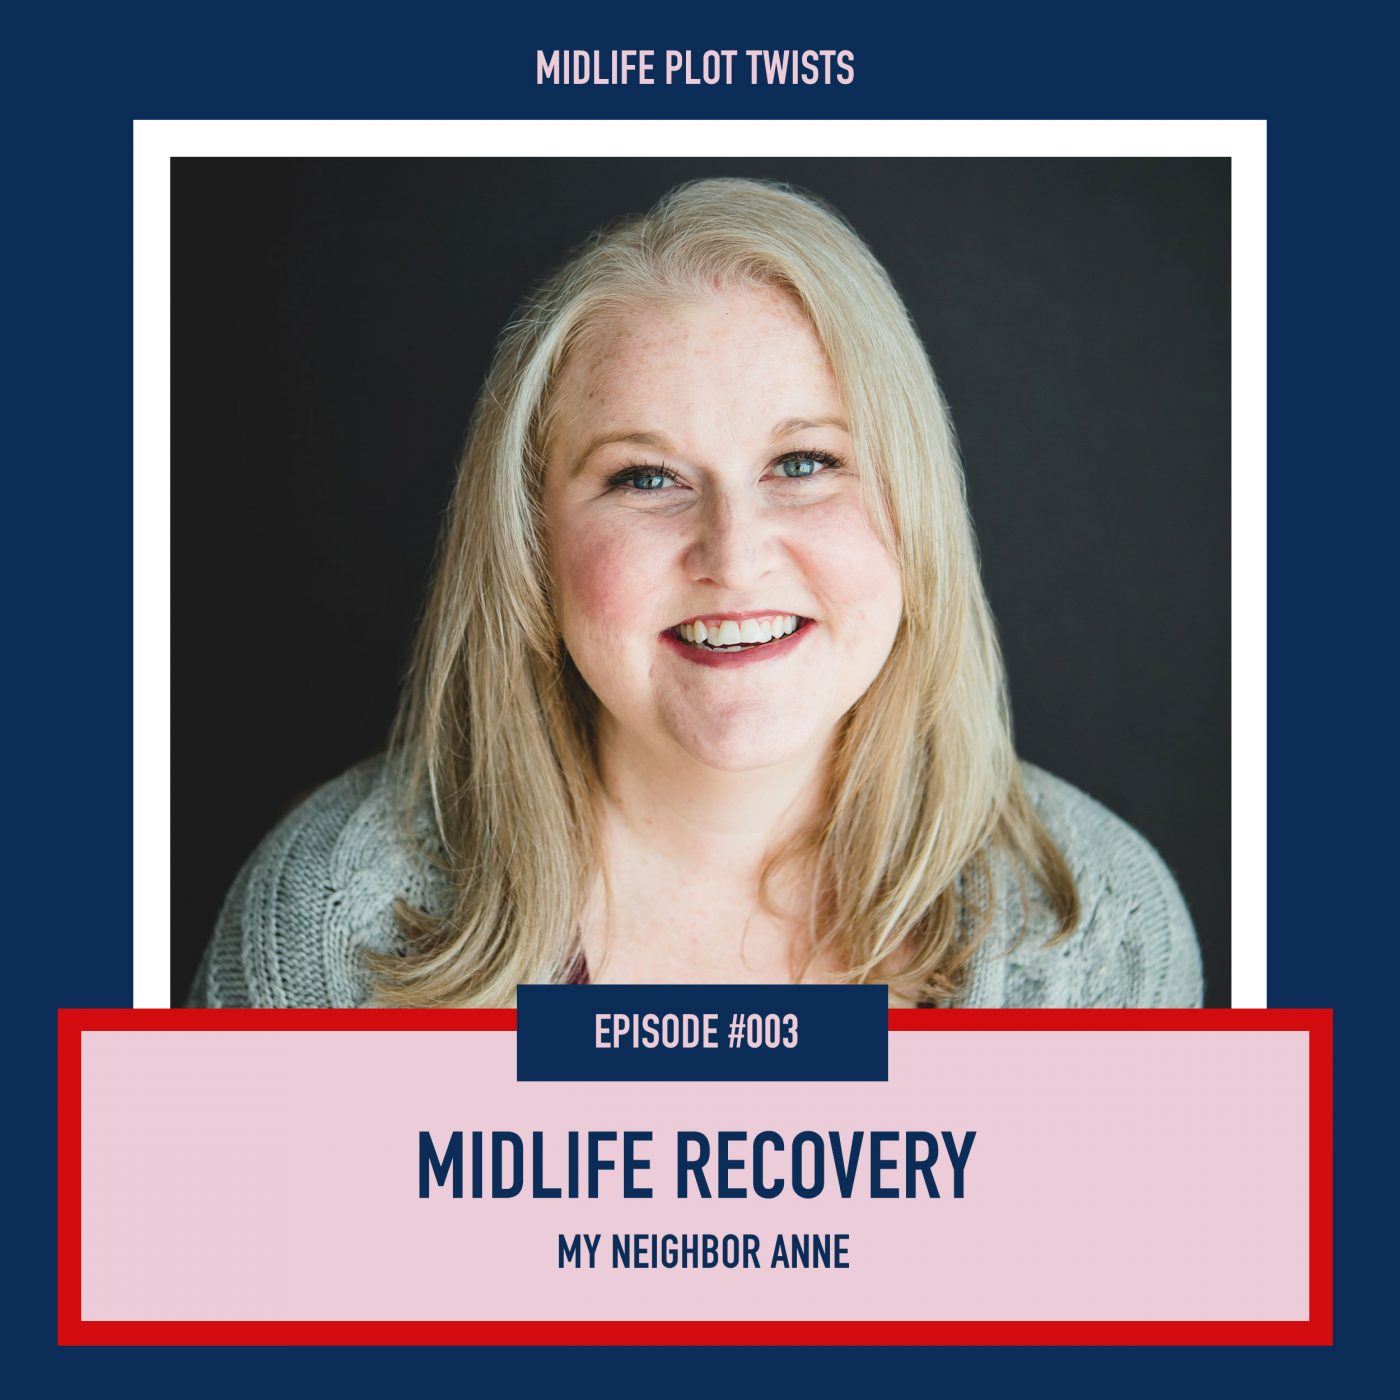 midlife recovery